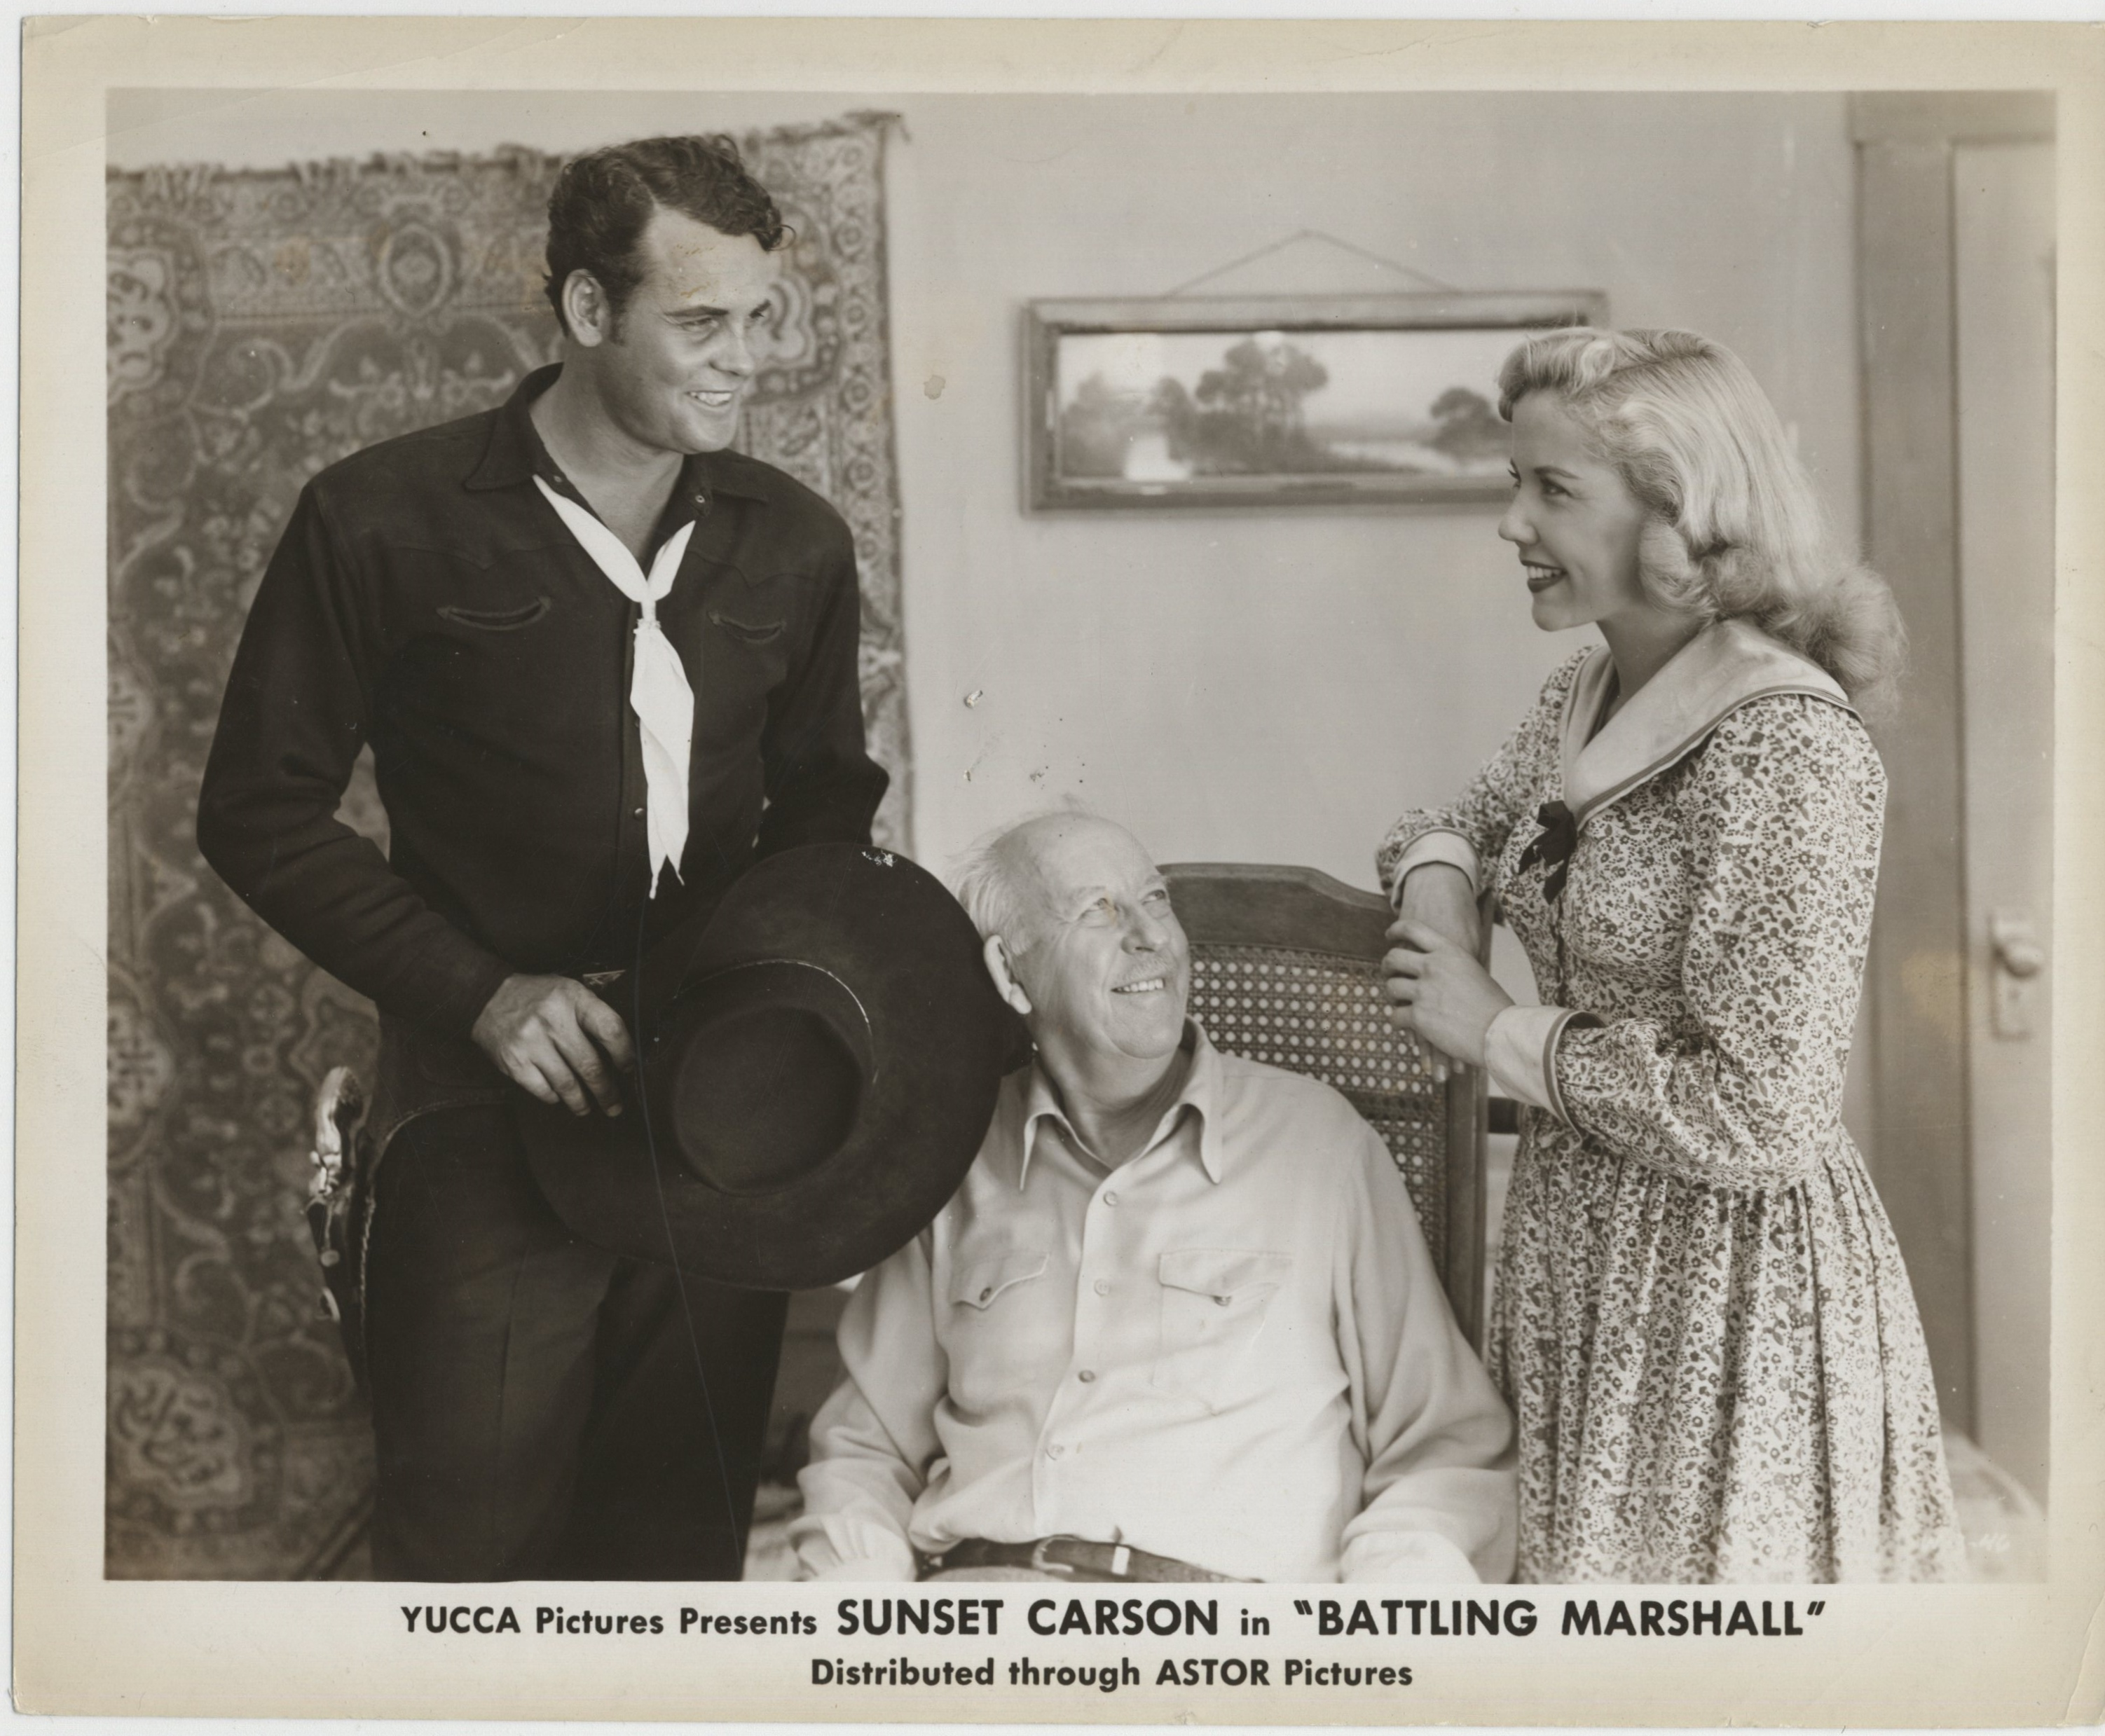 Jack Baxley, Sunset Carson, and Pat Starling in Battling Marshal (1950)